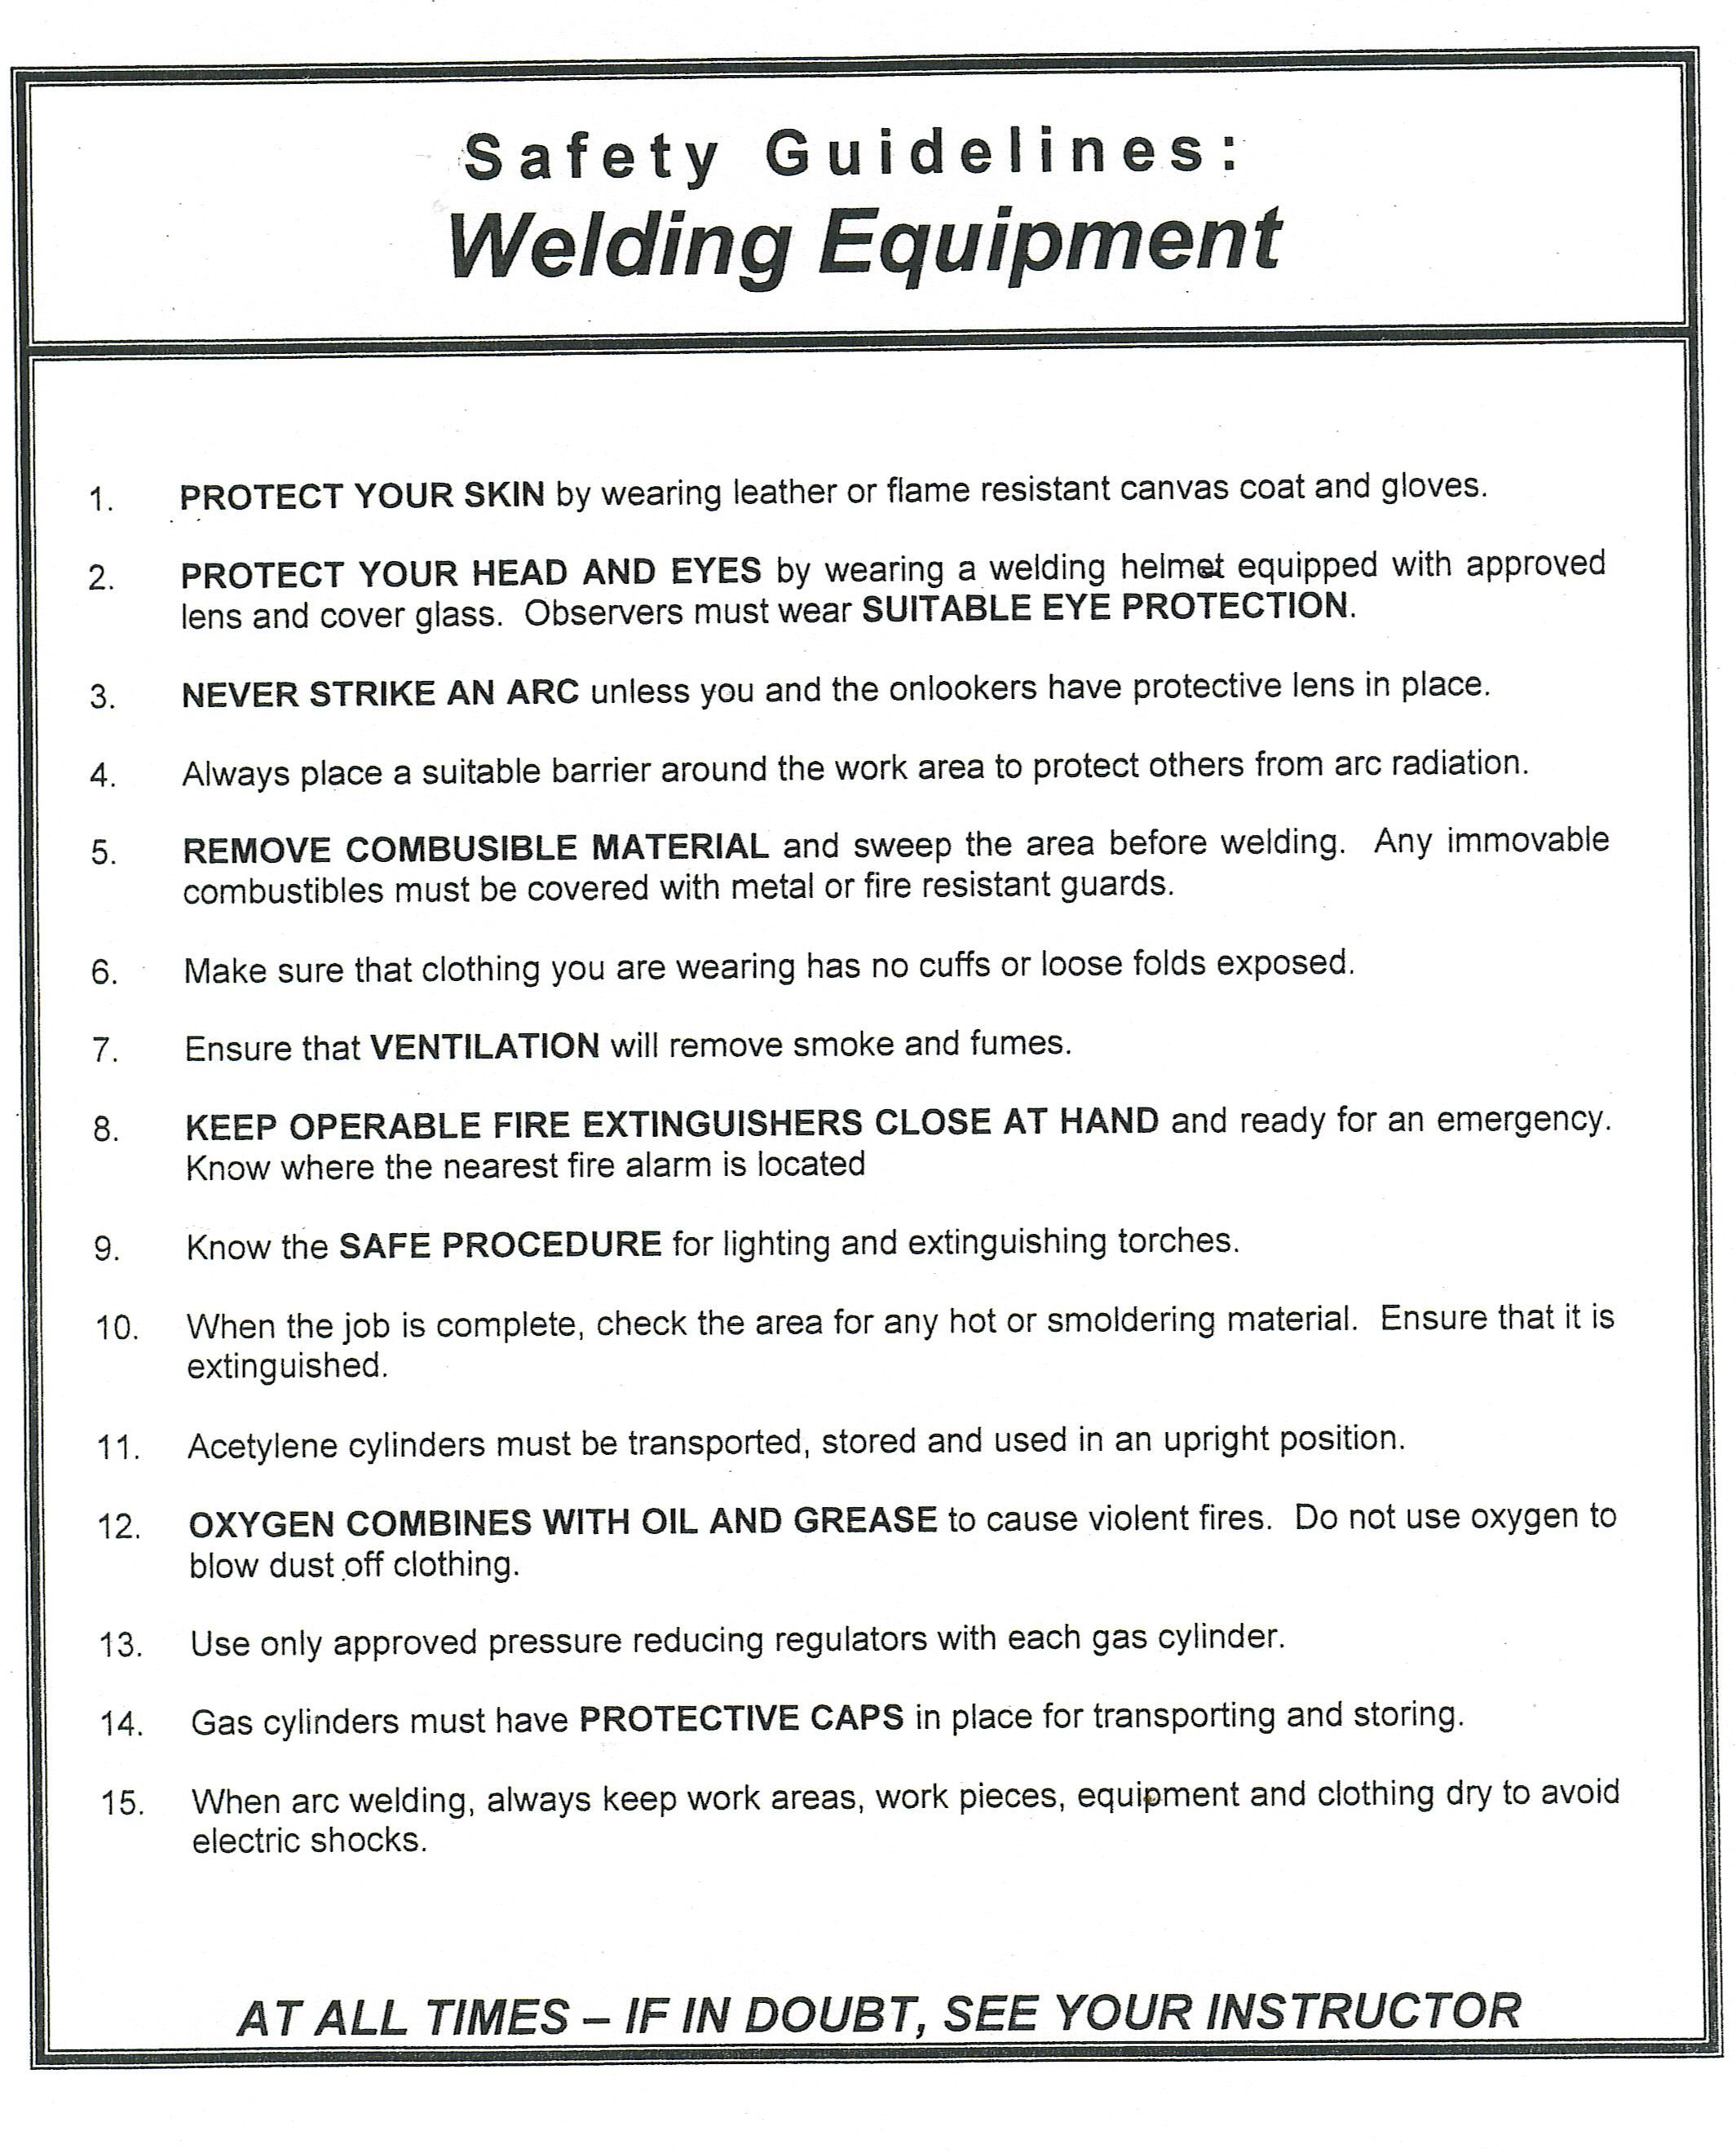 Pin By Jan Burger On Safety Signs Pinterest Welding And Fishbone Diagram Defects Workshop Security Guard Soldering Atelier Work Shop Garage